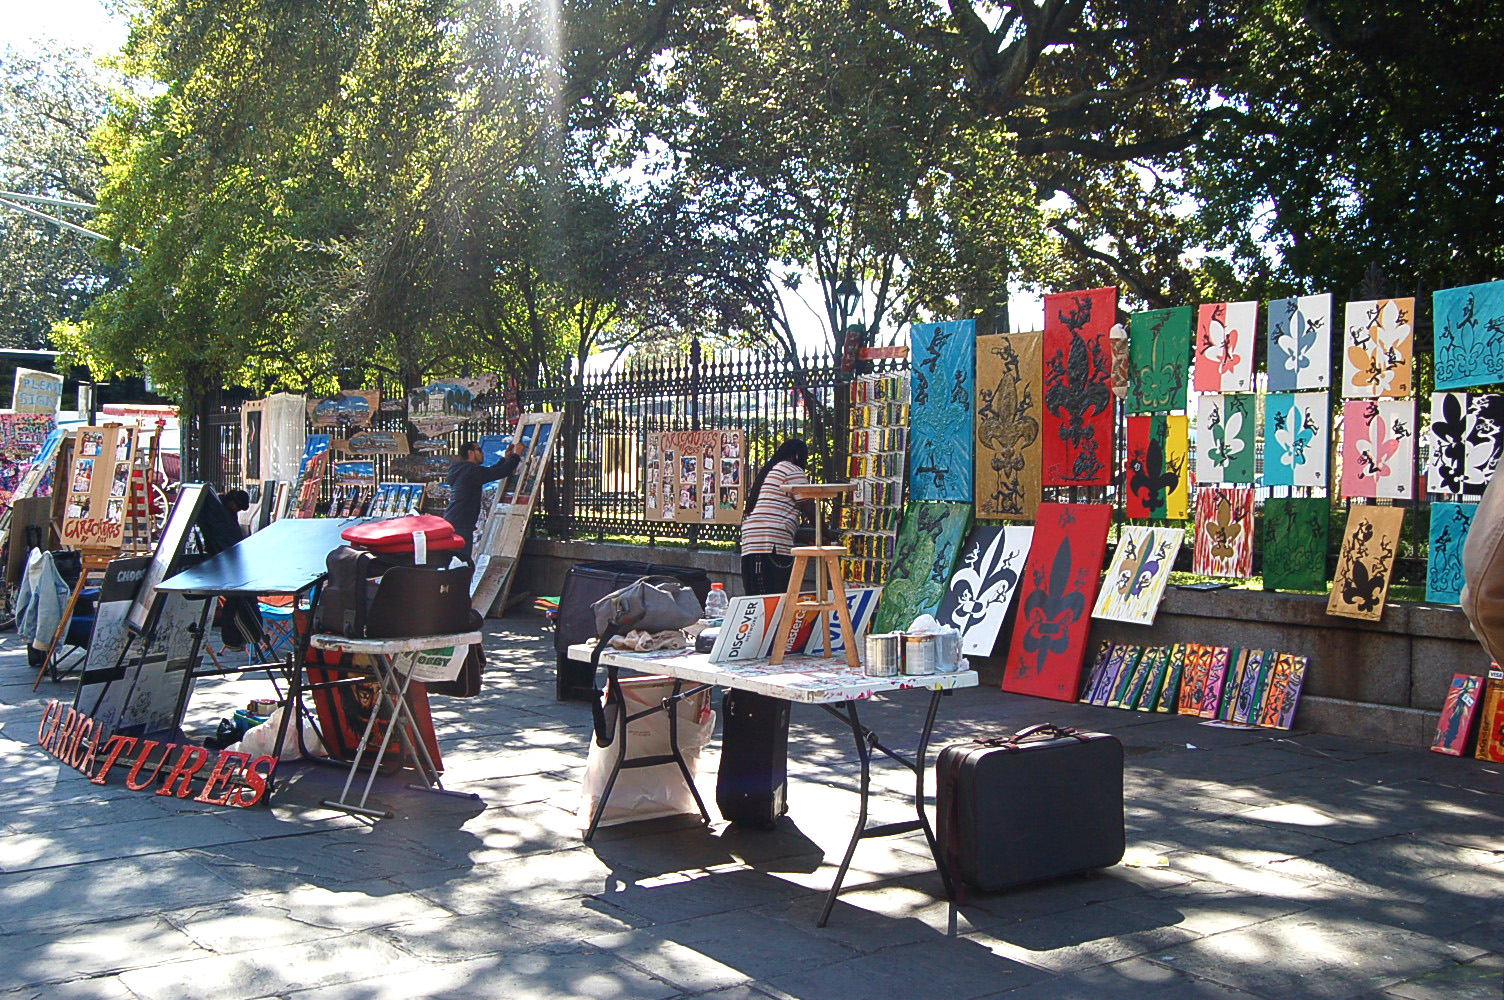 Art in Jackson Square, New Orleans